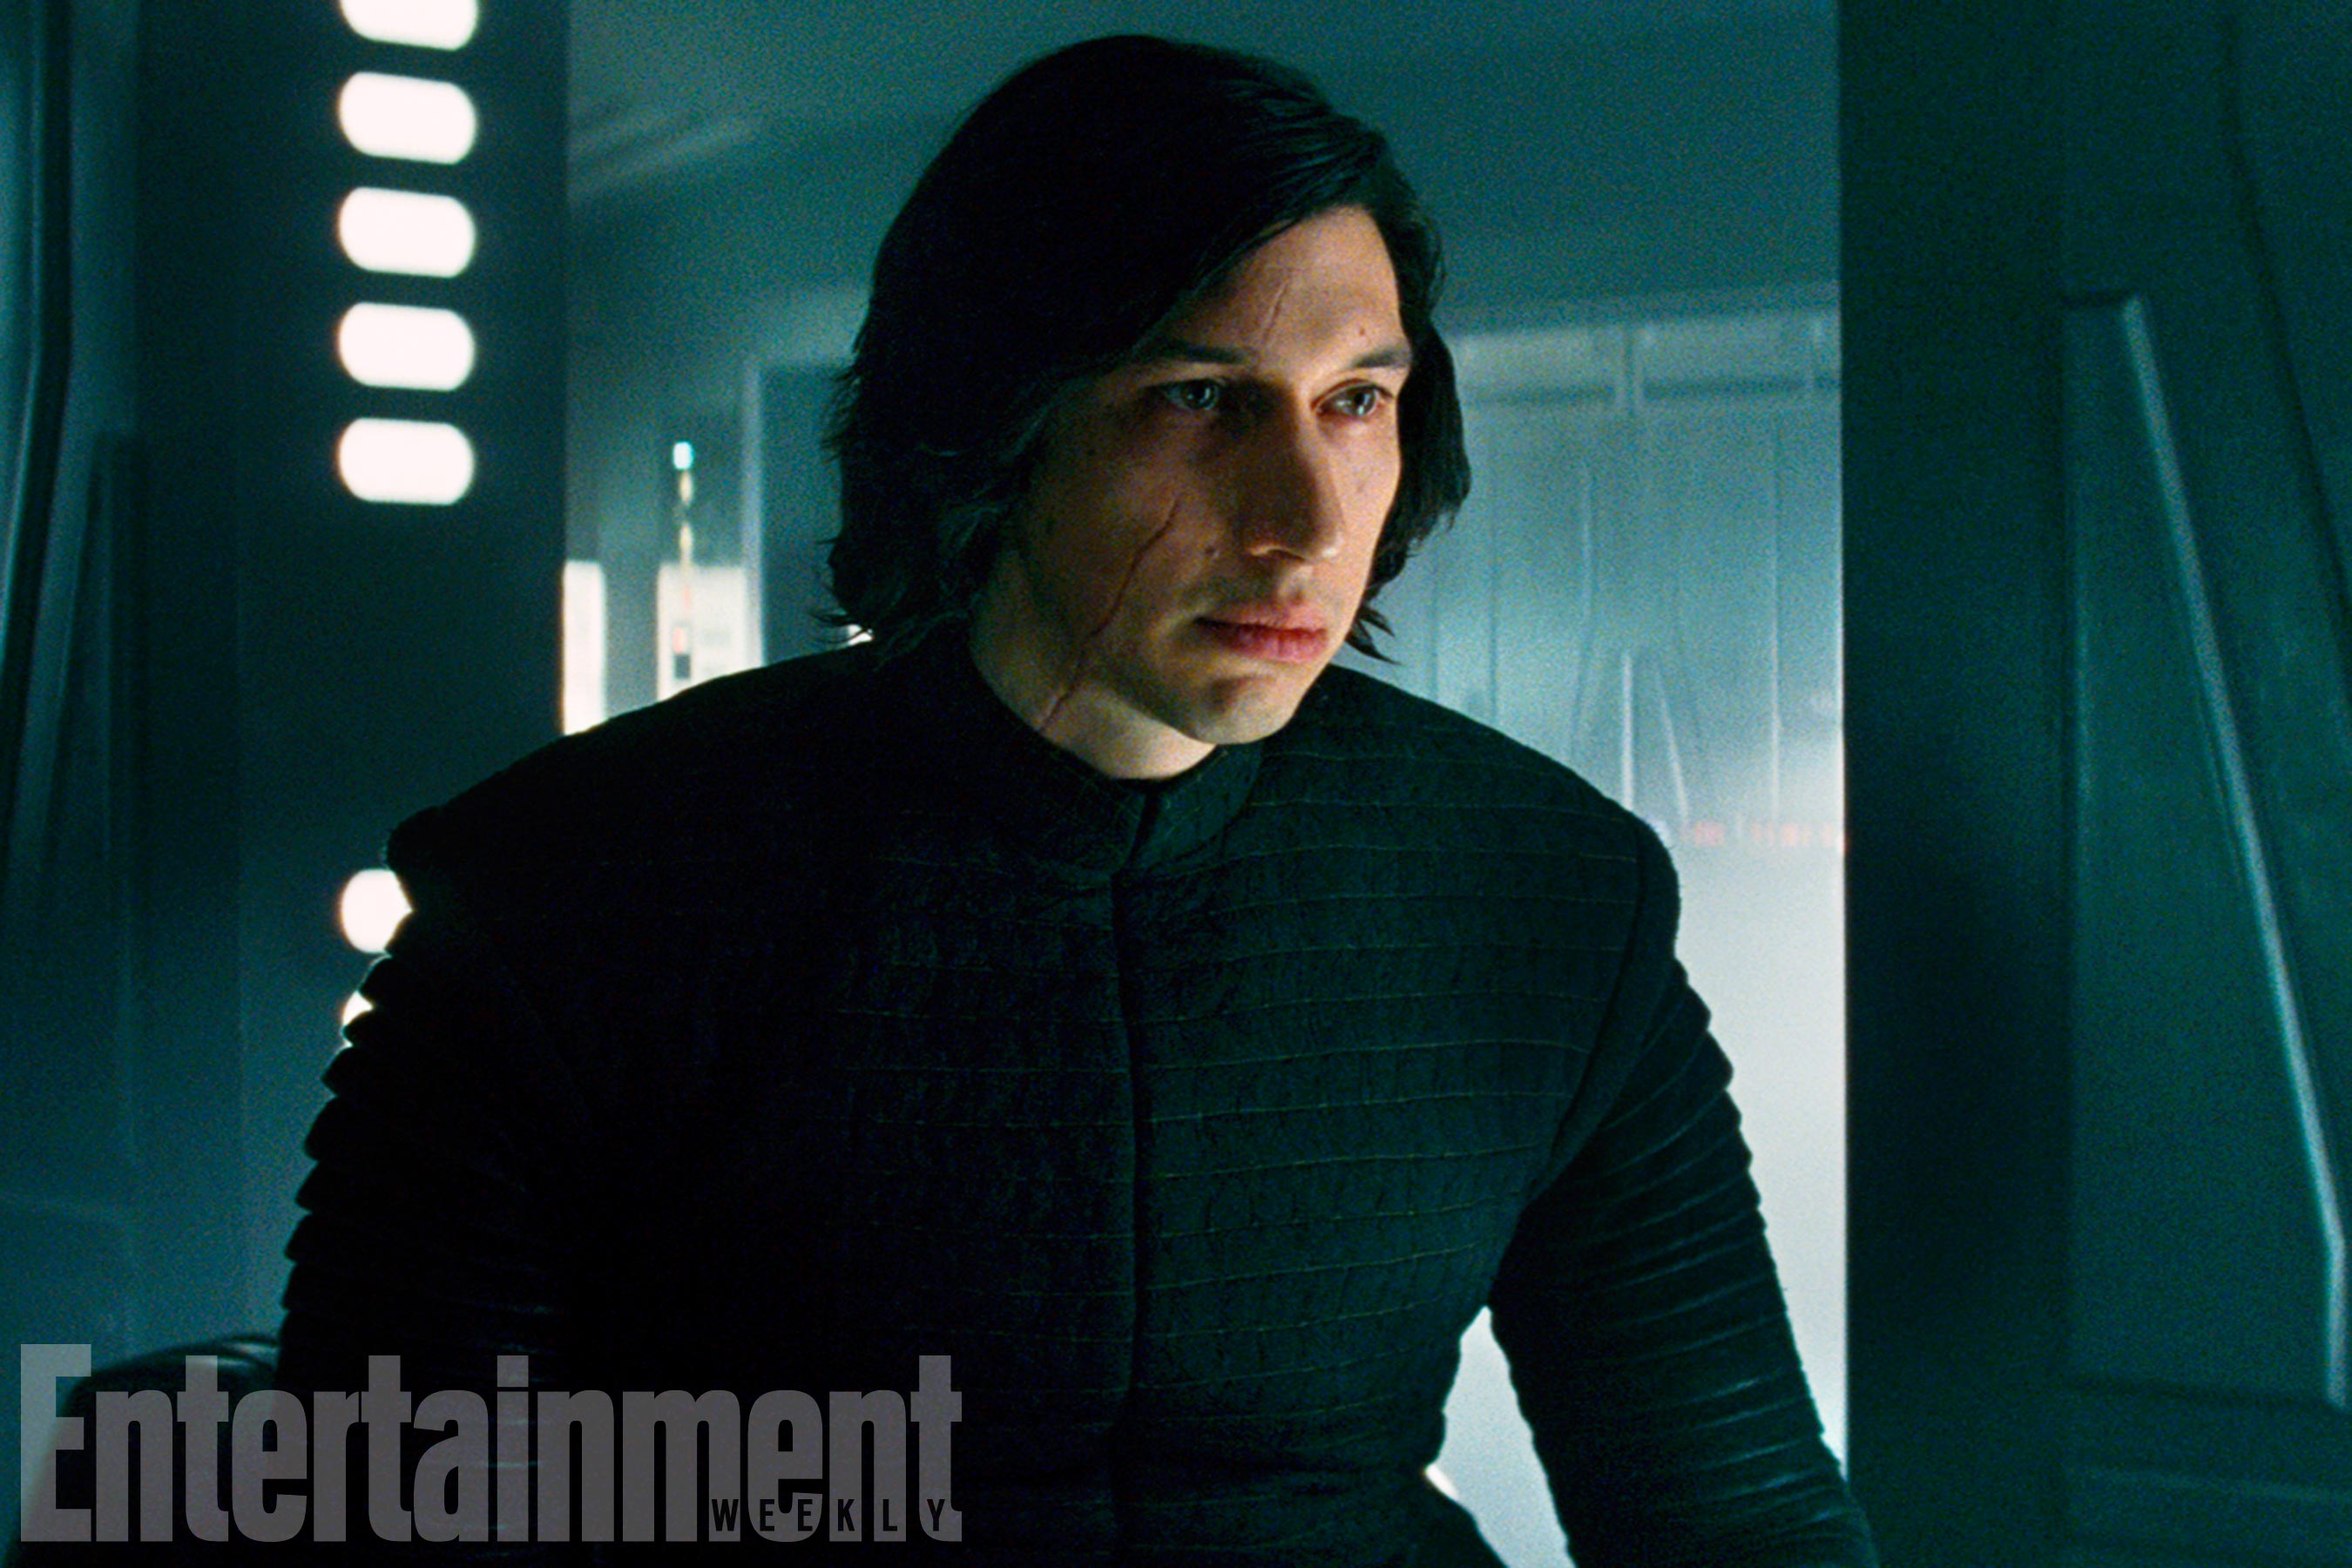 http://www.starwars-universe.com/images/actualites/episode8/entertainmentweekly_08_2017/04.jpg